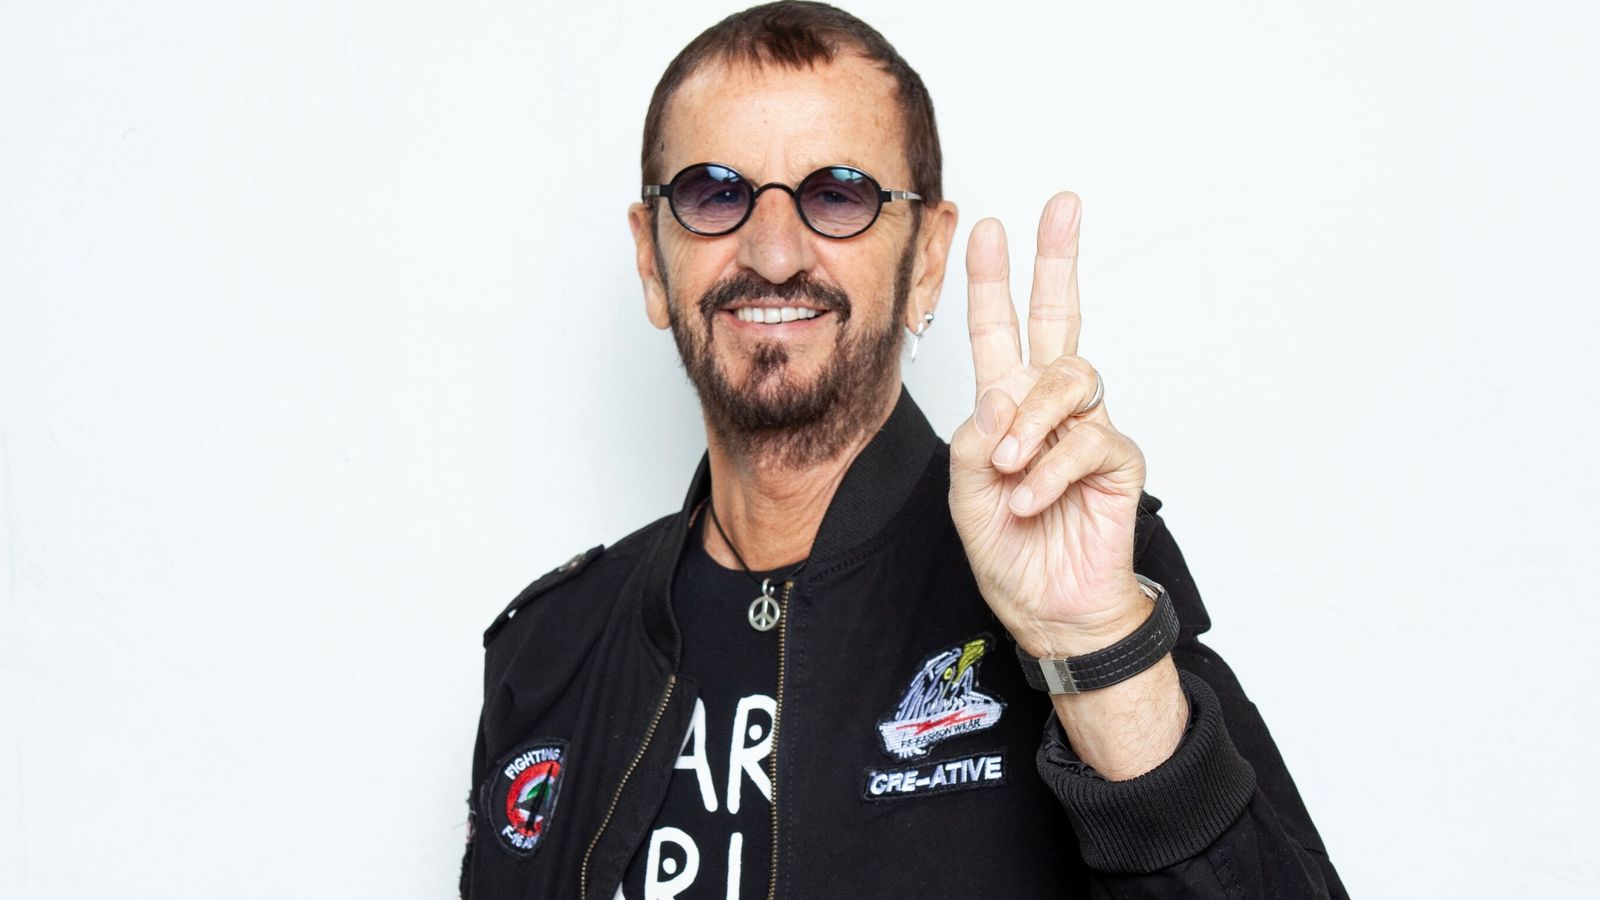 Ringo Starr drops legal fight against Ring O sex toys as makers agree to 'avoid any activity likely to lead to confusion'